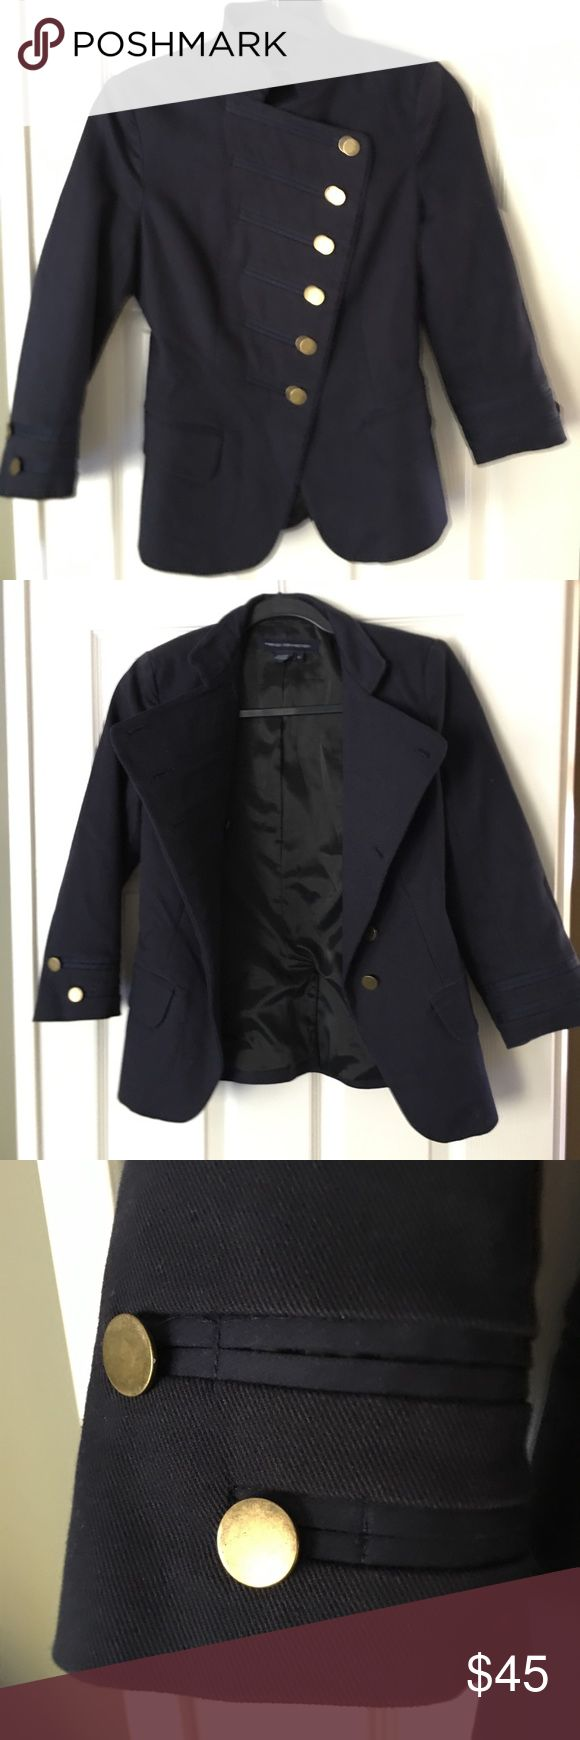 French connection navy military jacket French connection fitted navy blue military jacket with gold details size 4 French Connection Jackets & Coats Blazers